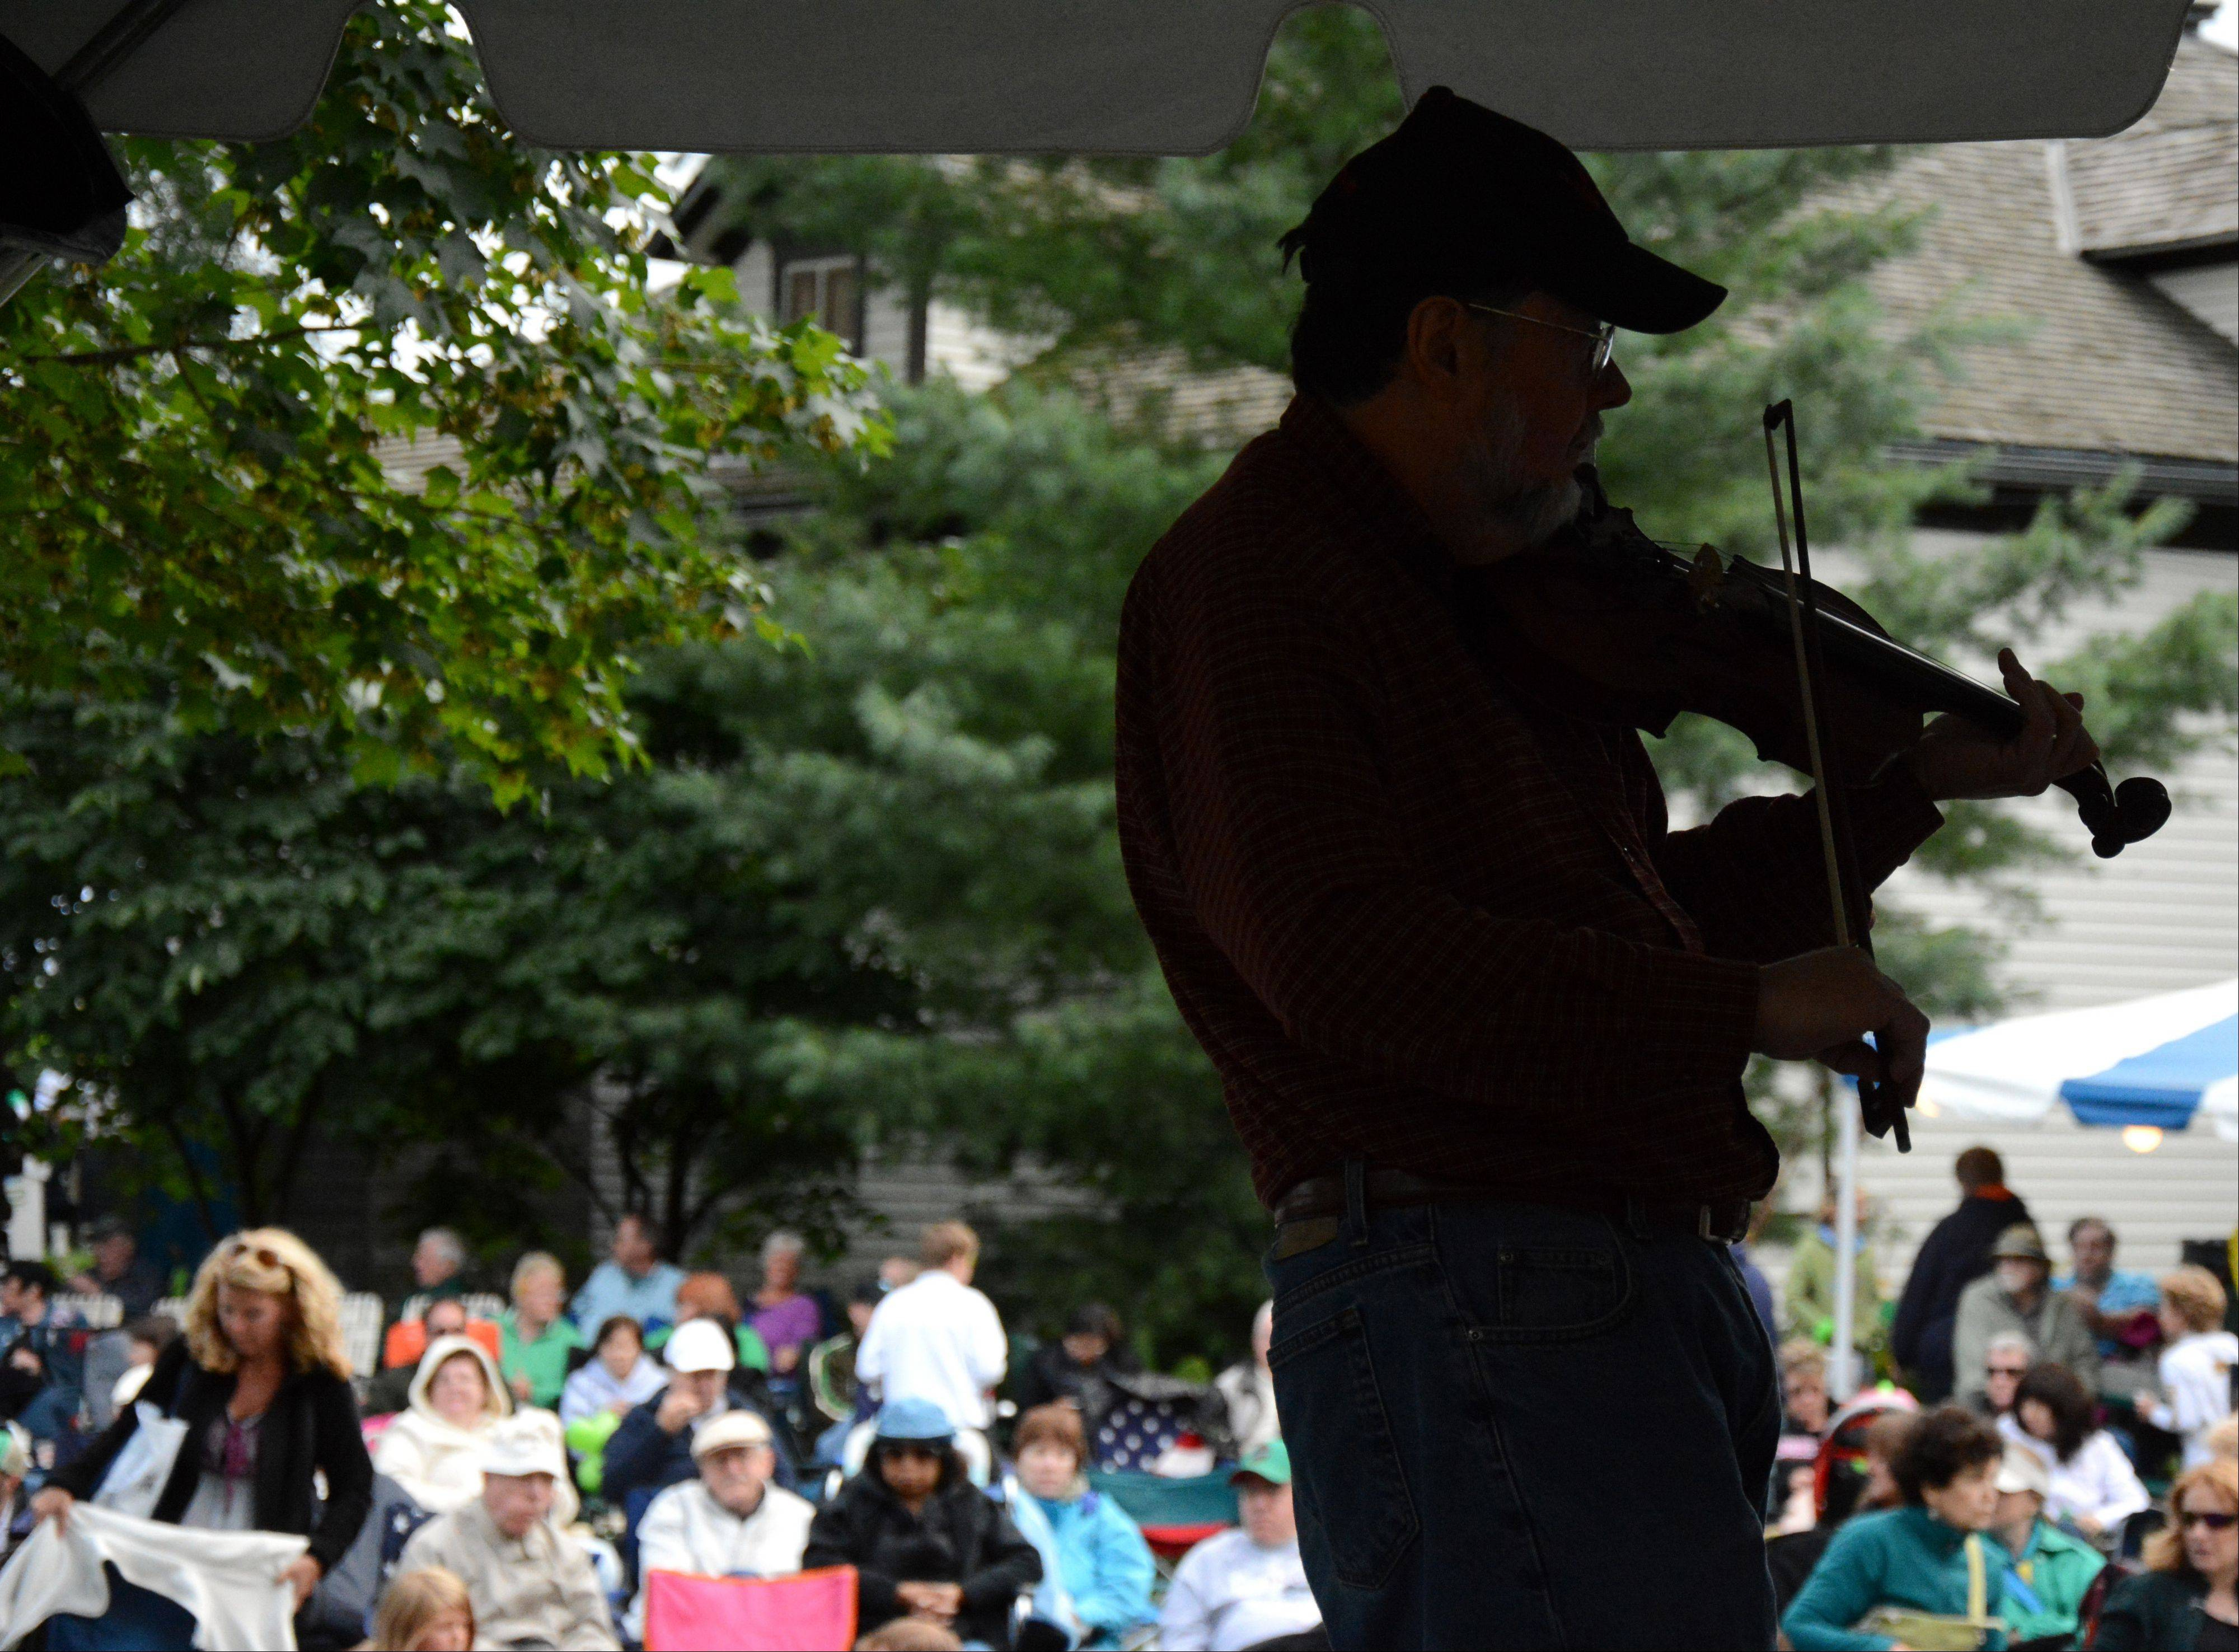 Dave Dvorak/ddvorak@dailyherald.comRick Versas, of Chicago, plays fiddle with band Mulligan Stew as a large crowd looks on at the Arlington Heights Irish Fest Saturday, July 27.